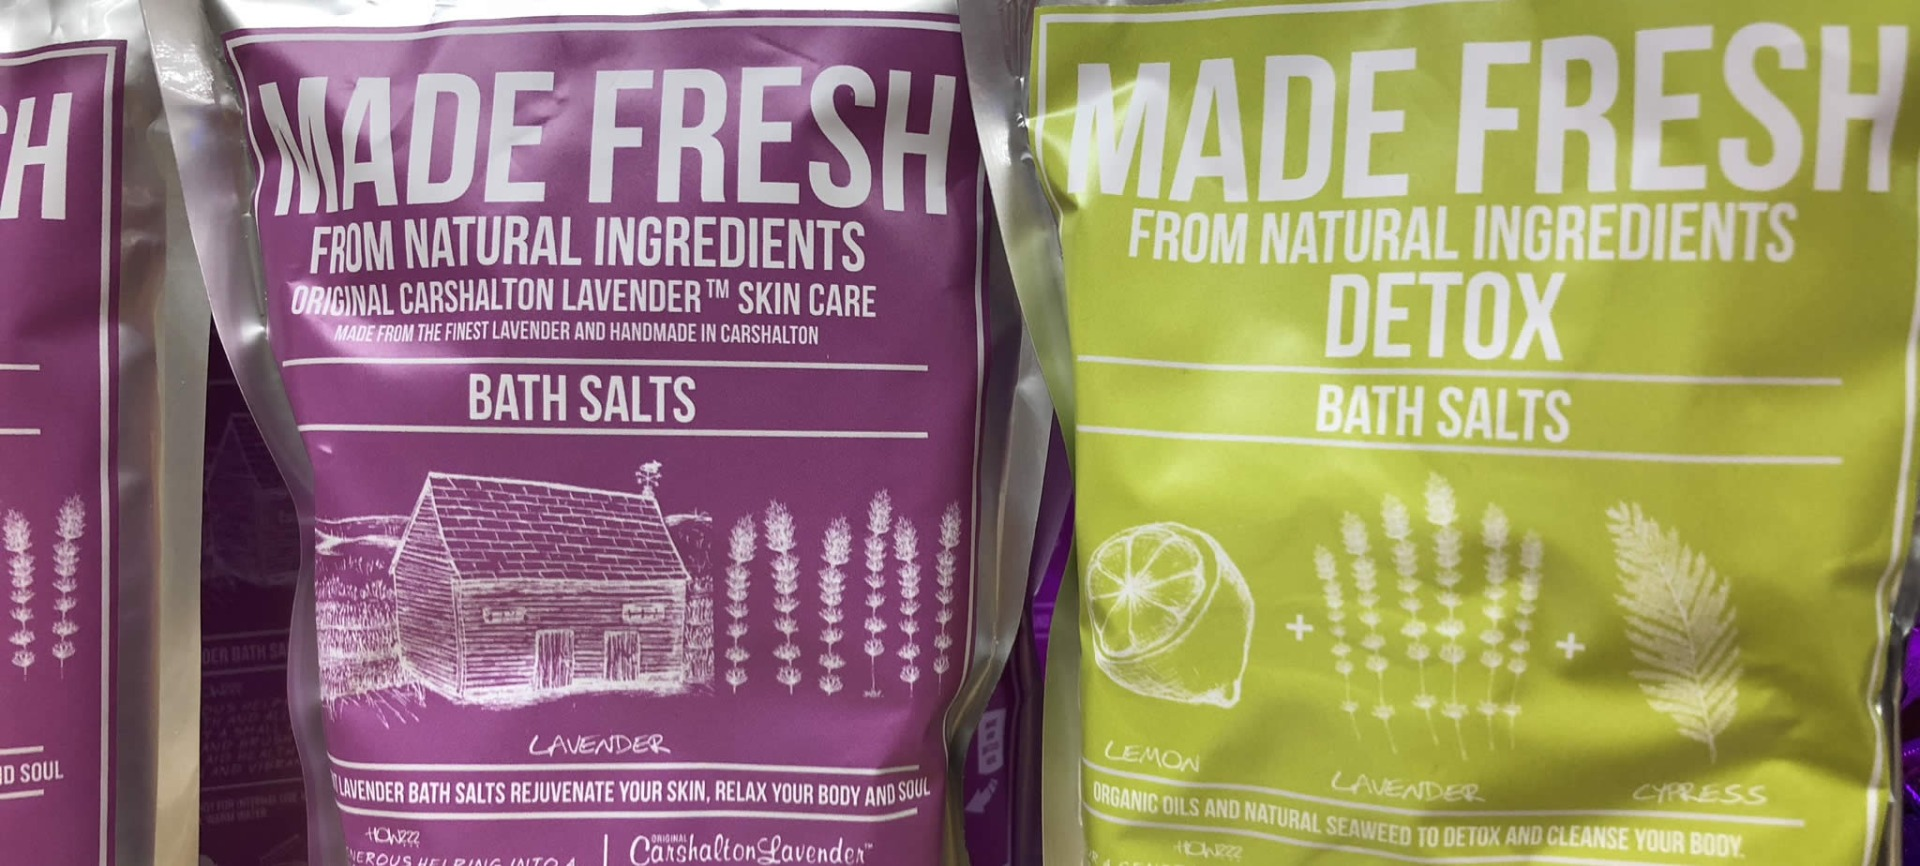 bath-salt-header.jpg